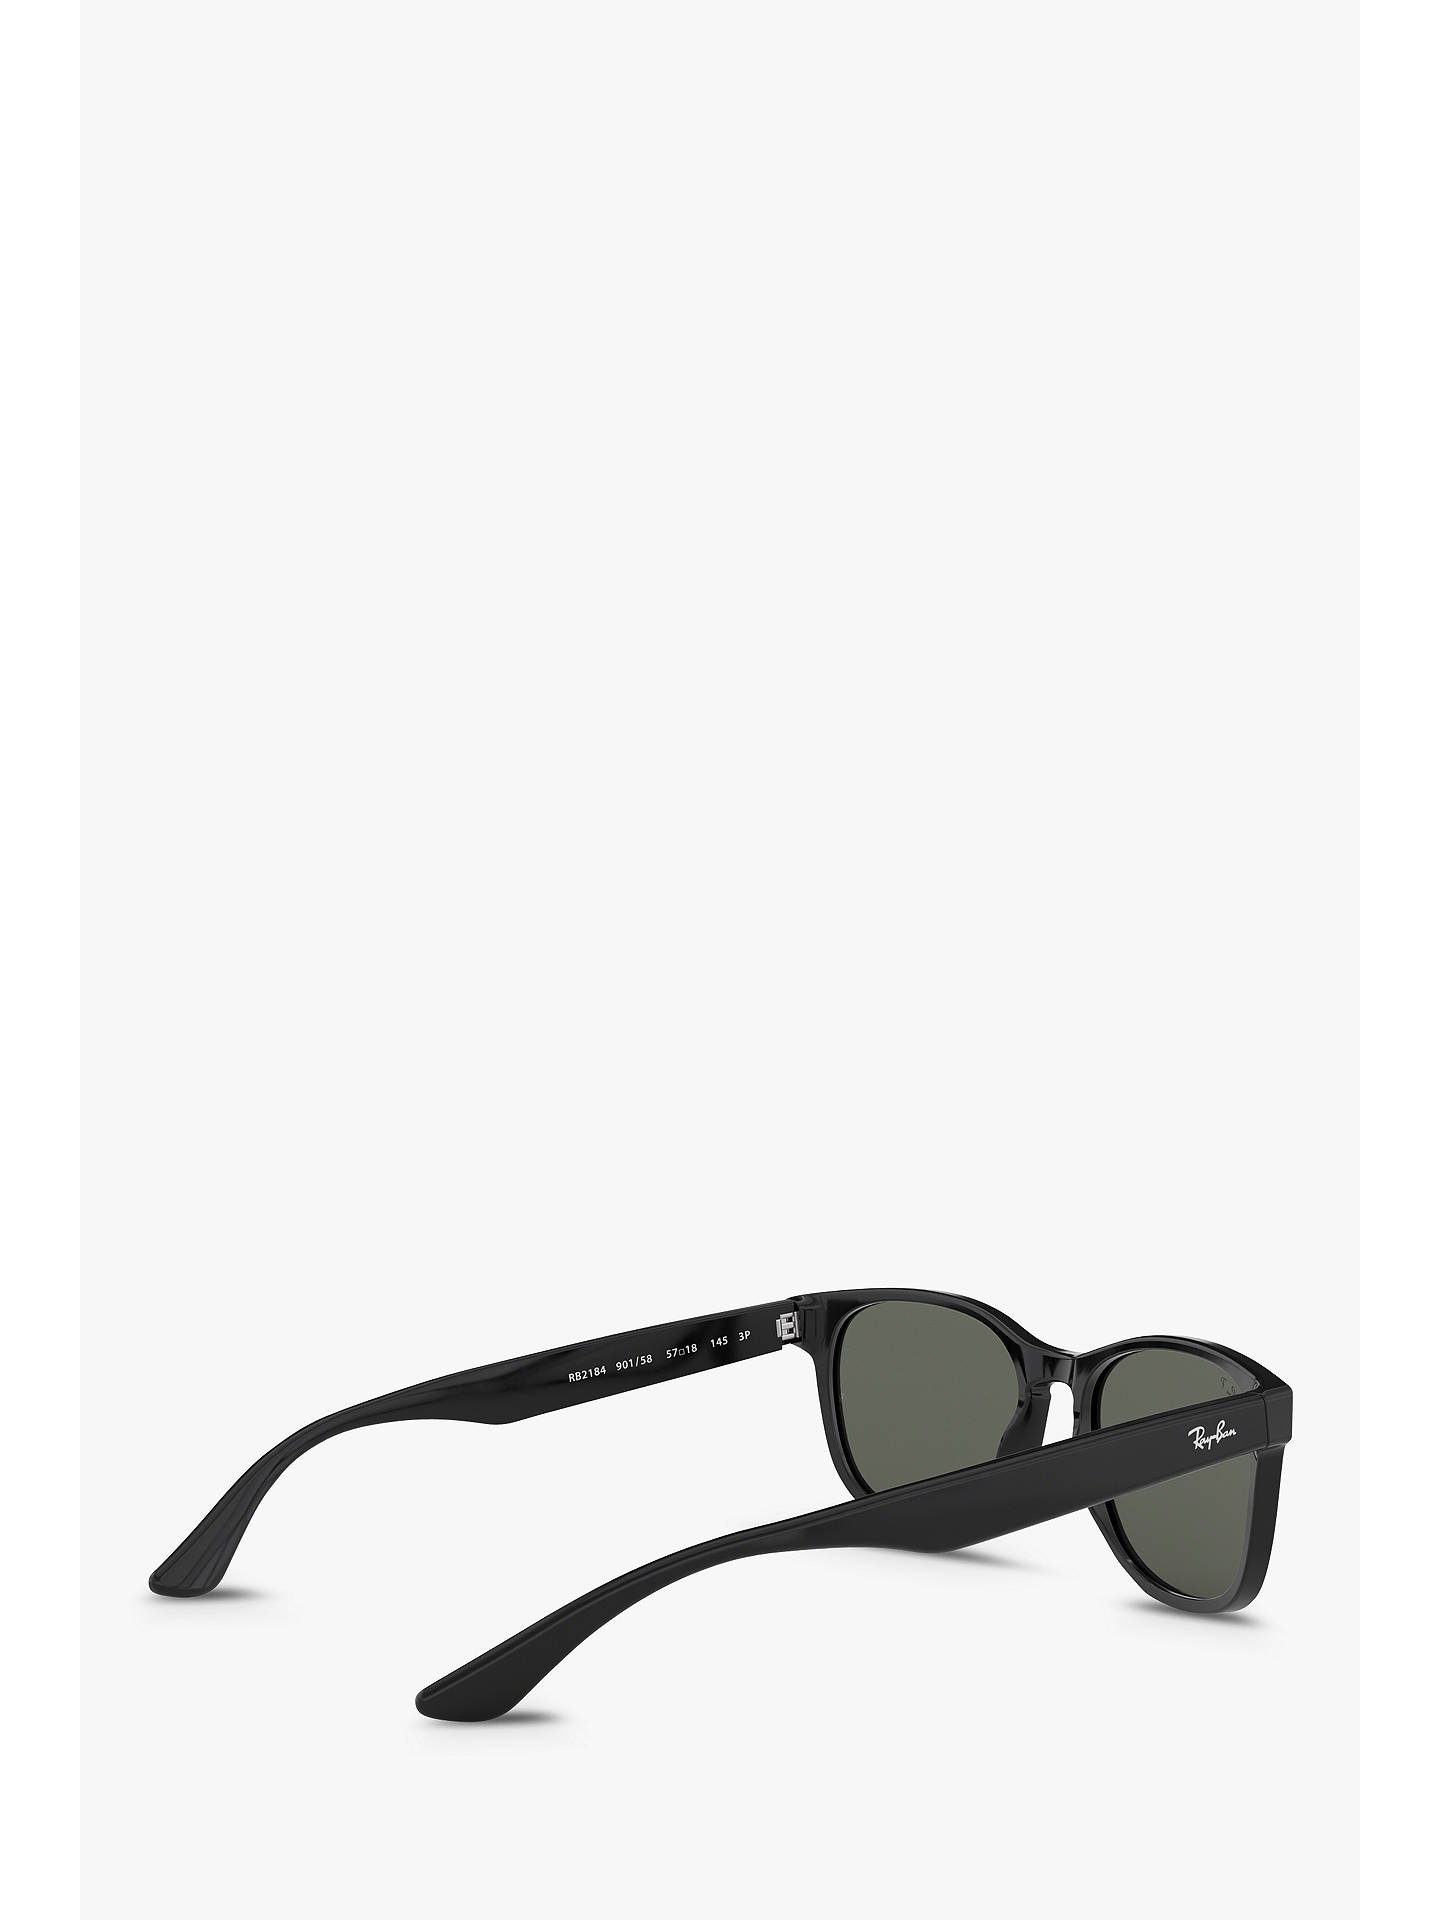 BuyRay-Ban RB2184 Women's Polarised Square Sunglasses, Black/Grey Online at johnlewis.com